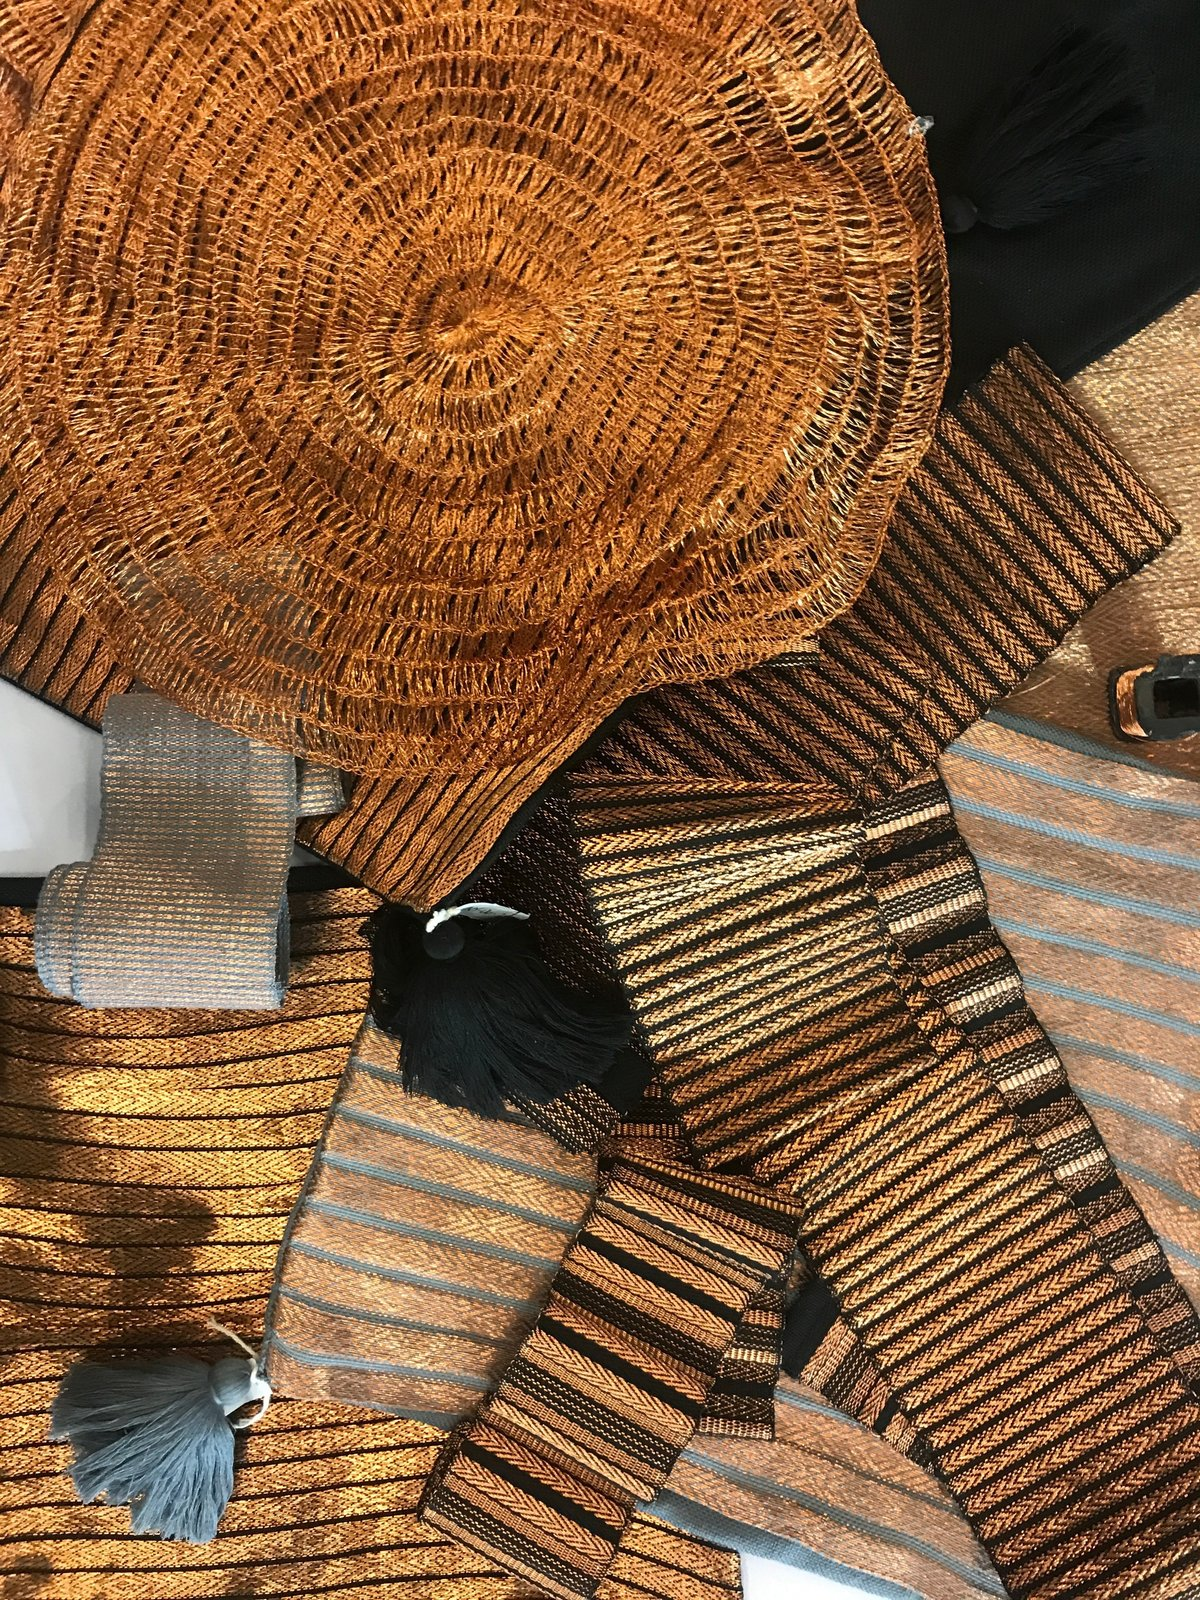 Lulu Mena, an El Salvador-based textile company, presented a recycled-copper textile. They make everything by hand using sustainable practices, working with local artisans.  Photo 16 of 36 in The Best of New York Design Week 2017